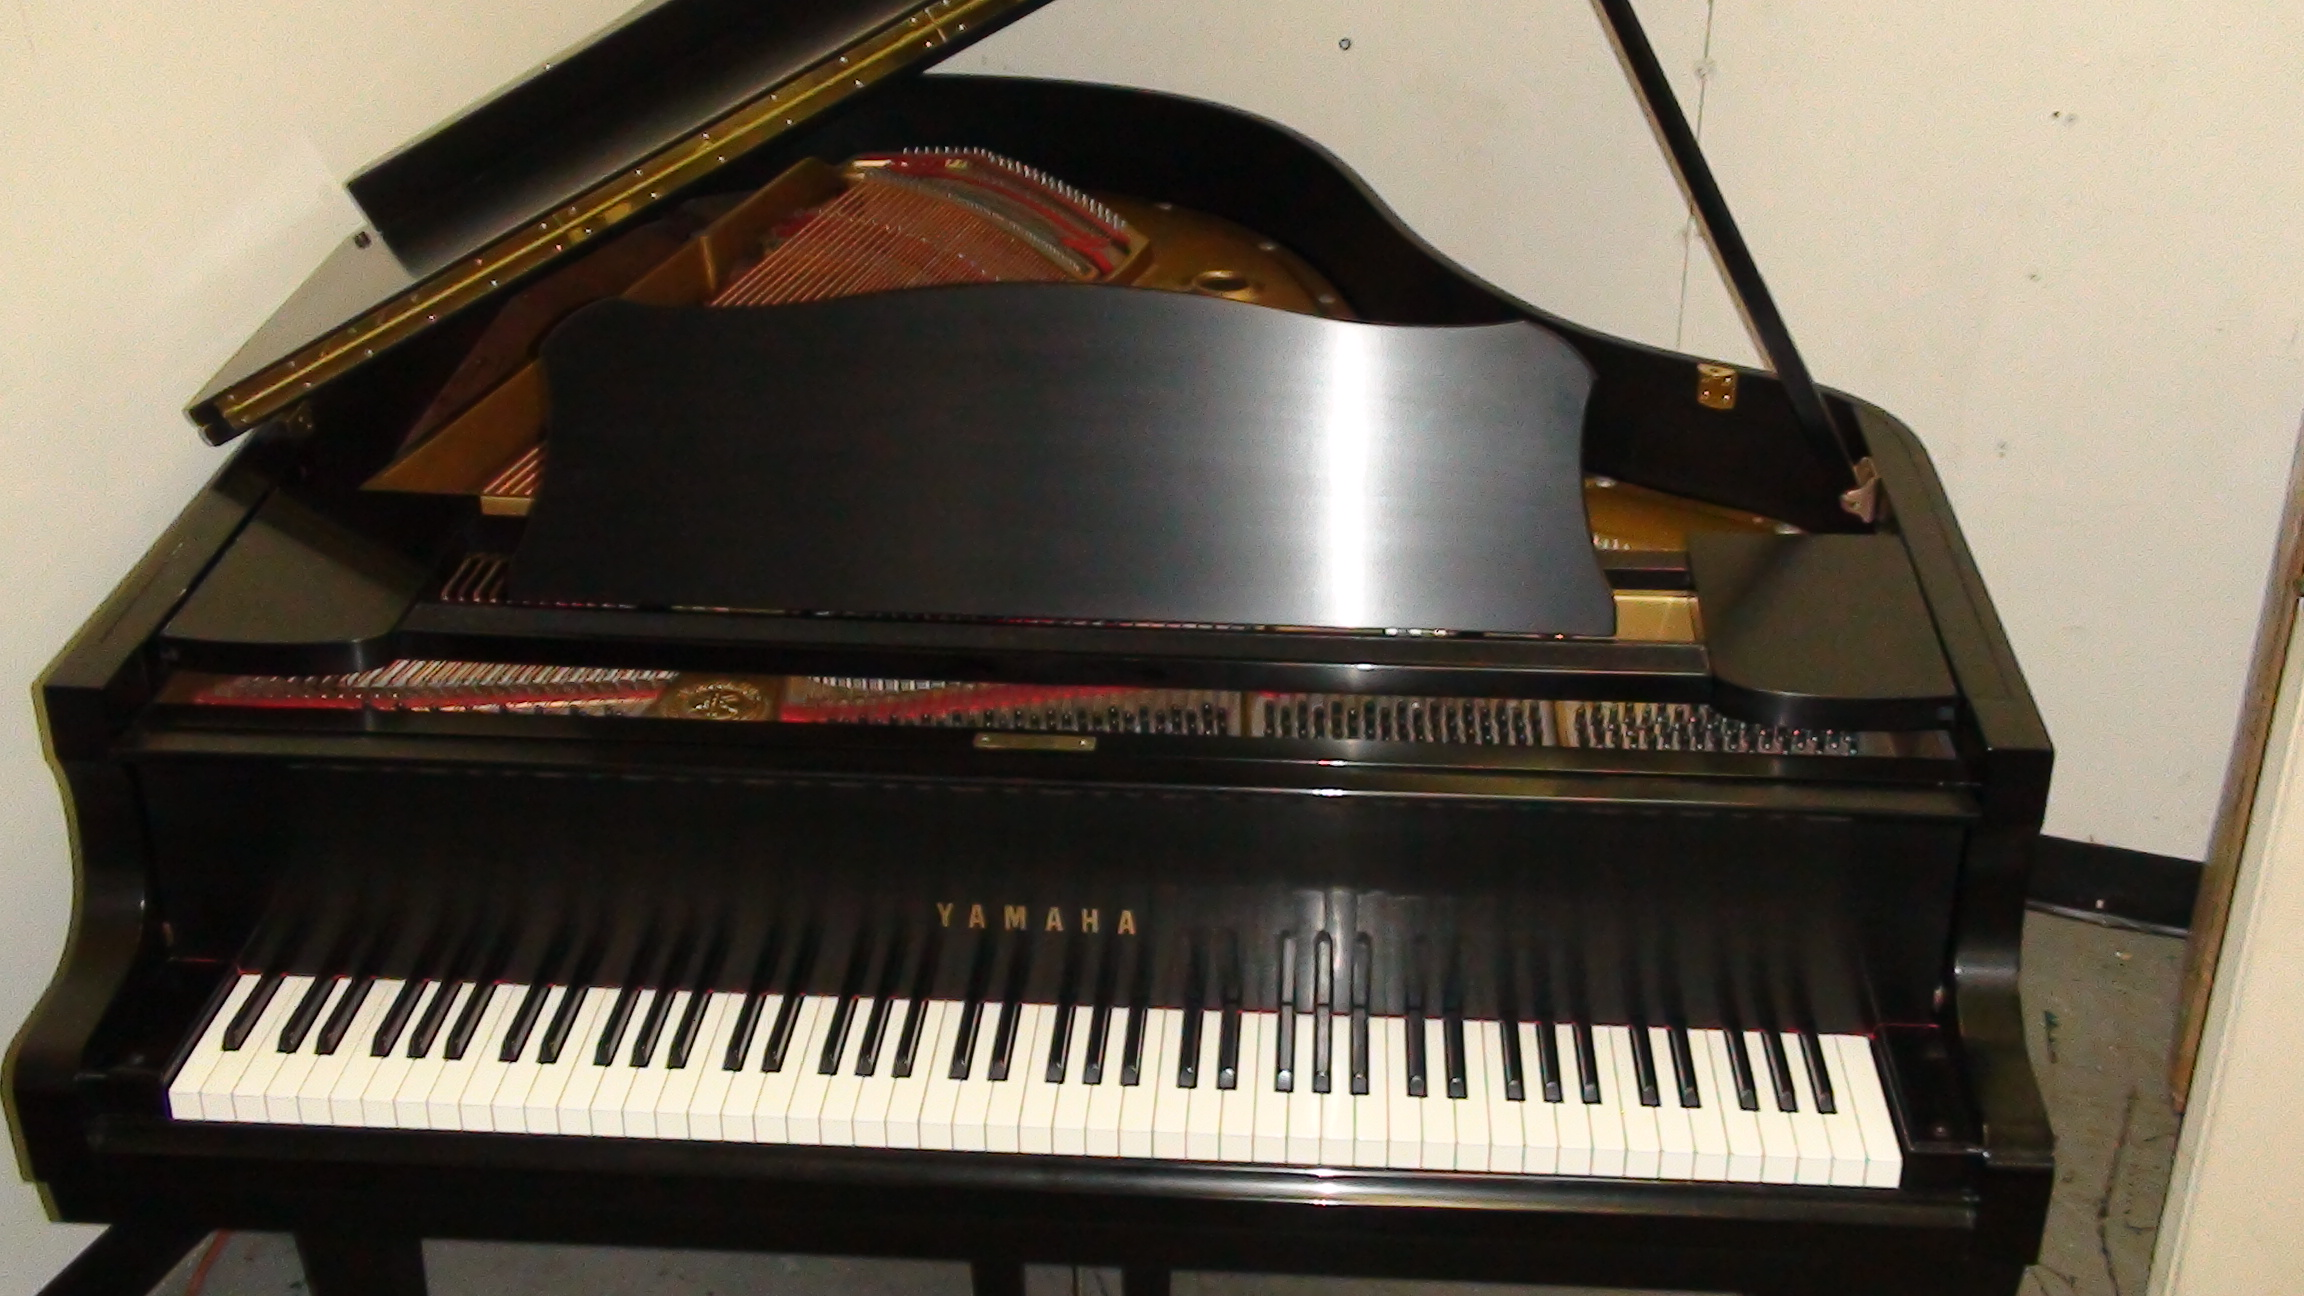 Yamaha g2 photo - 1